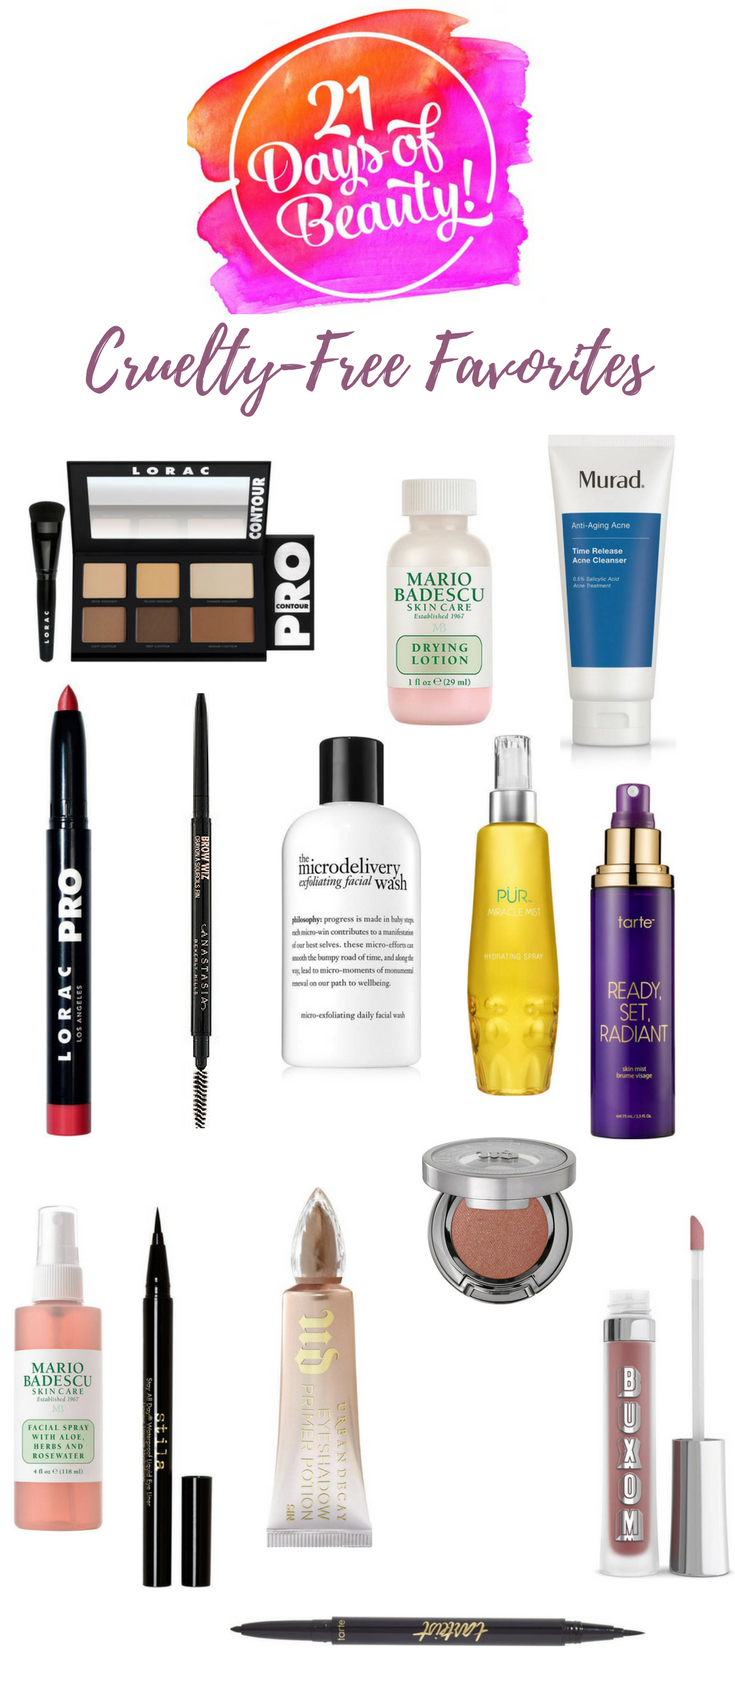 Ulta's 21 Days of Beauty